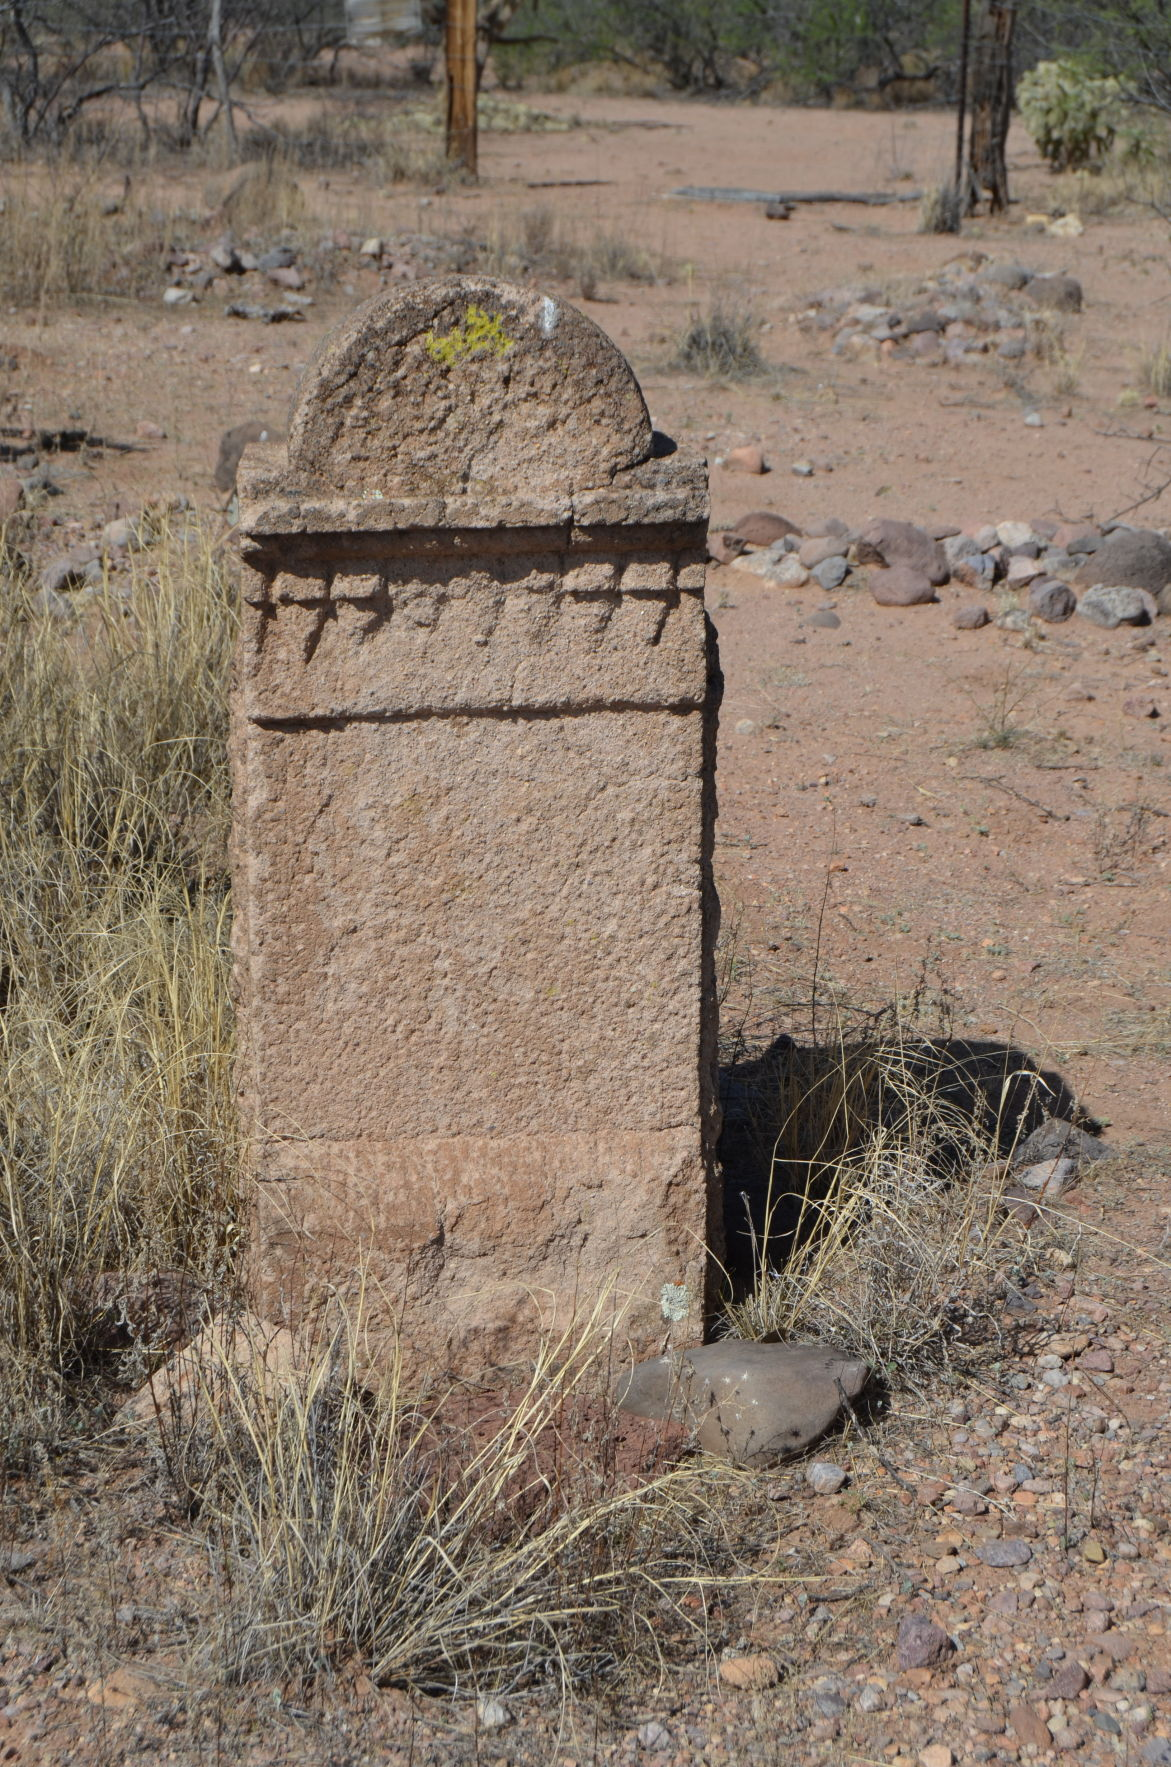 History at Sopori: Pioneers helped write state's story